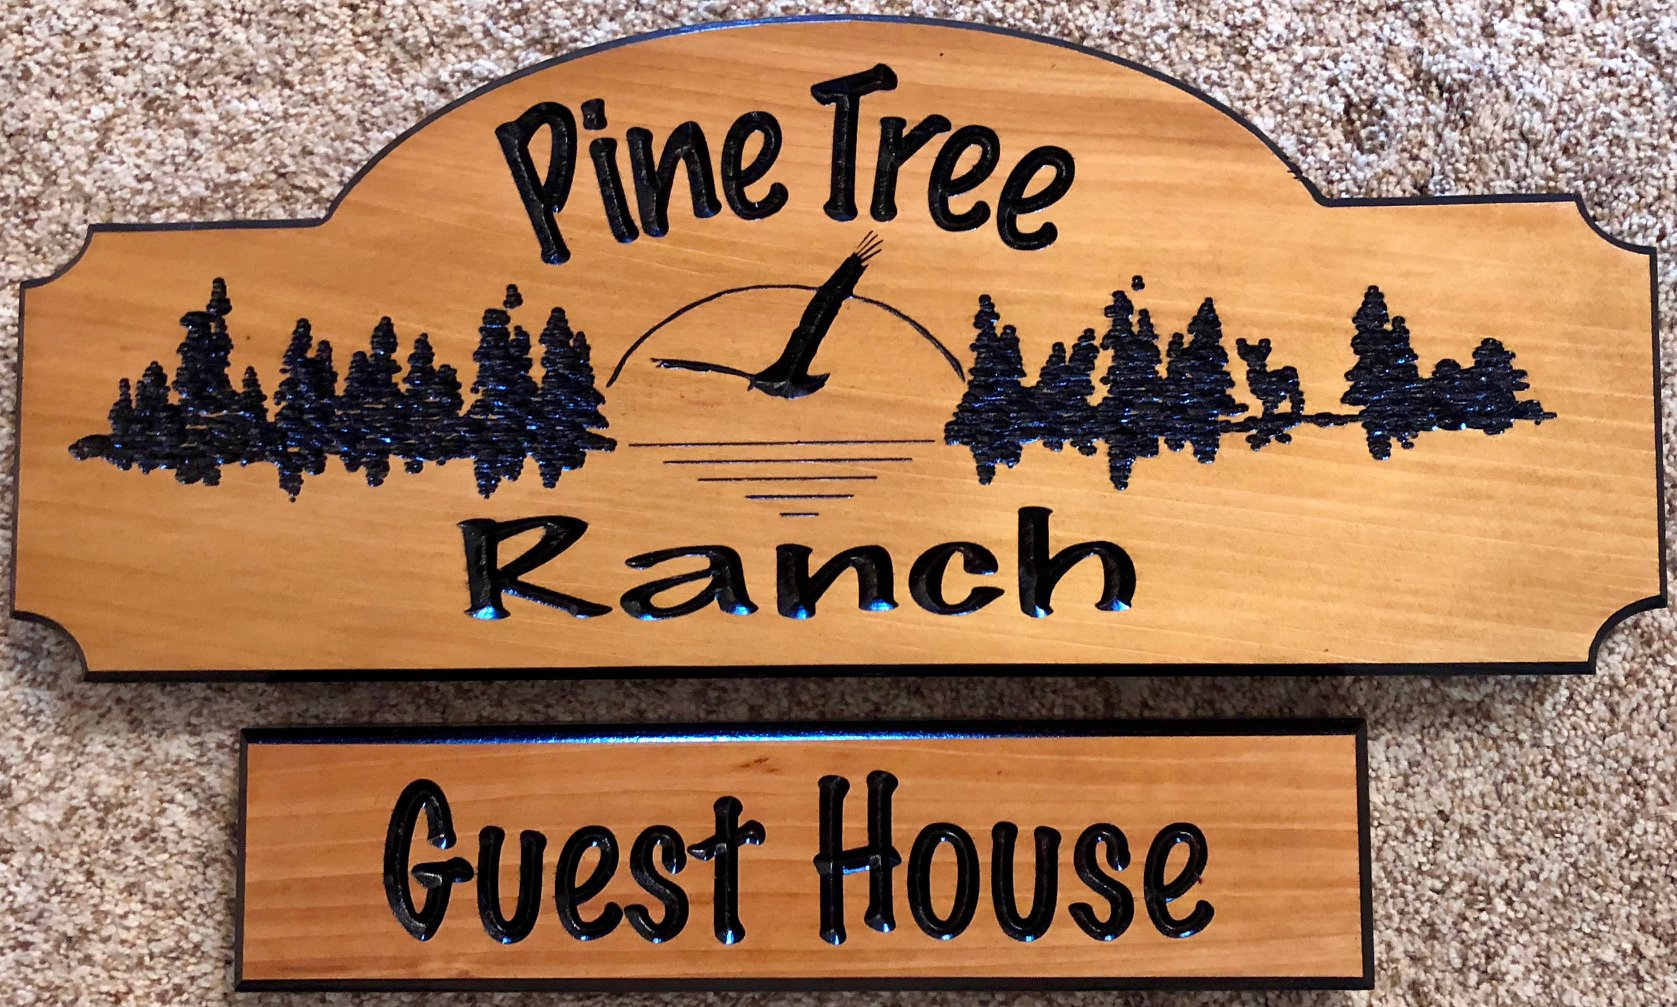 "613  Pine tree ranch wood sign with forest scene and hanging sign ""guest House"""